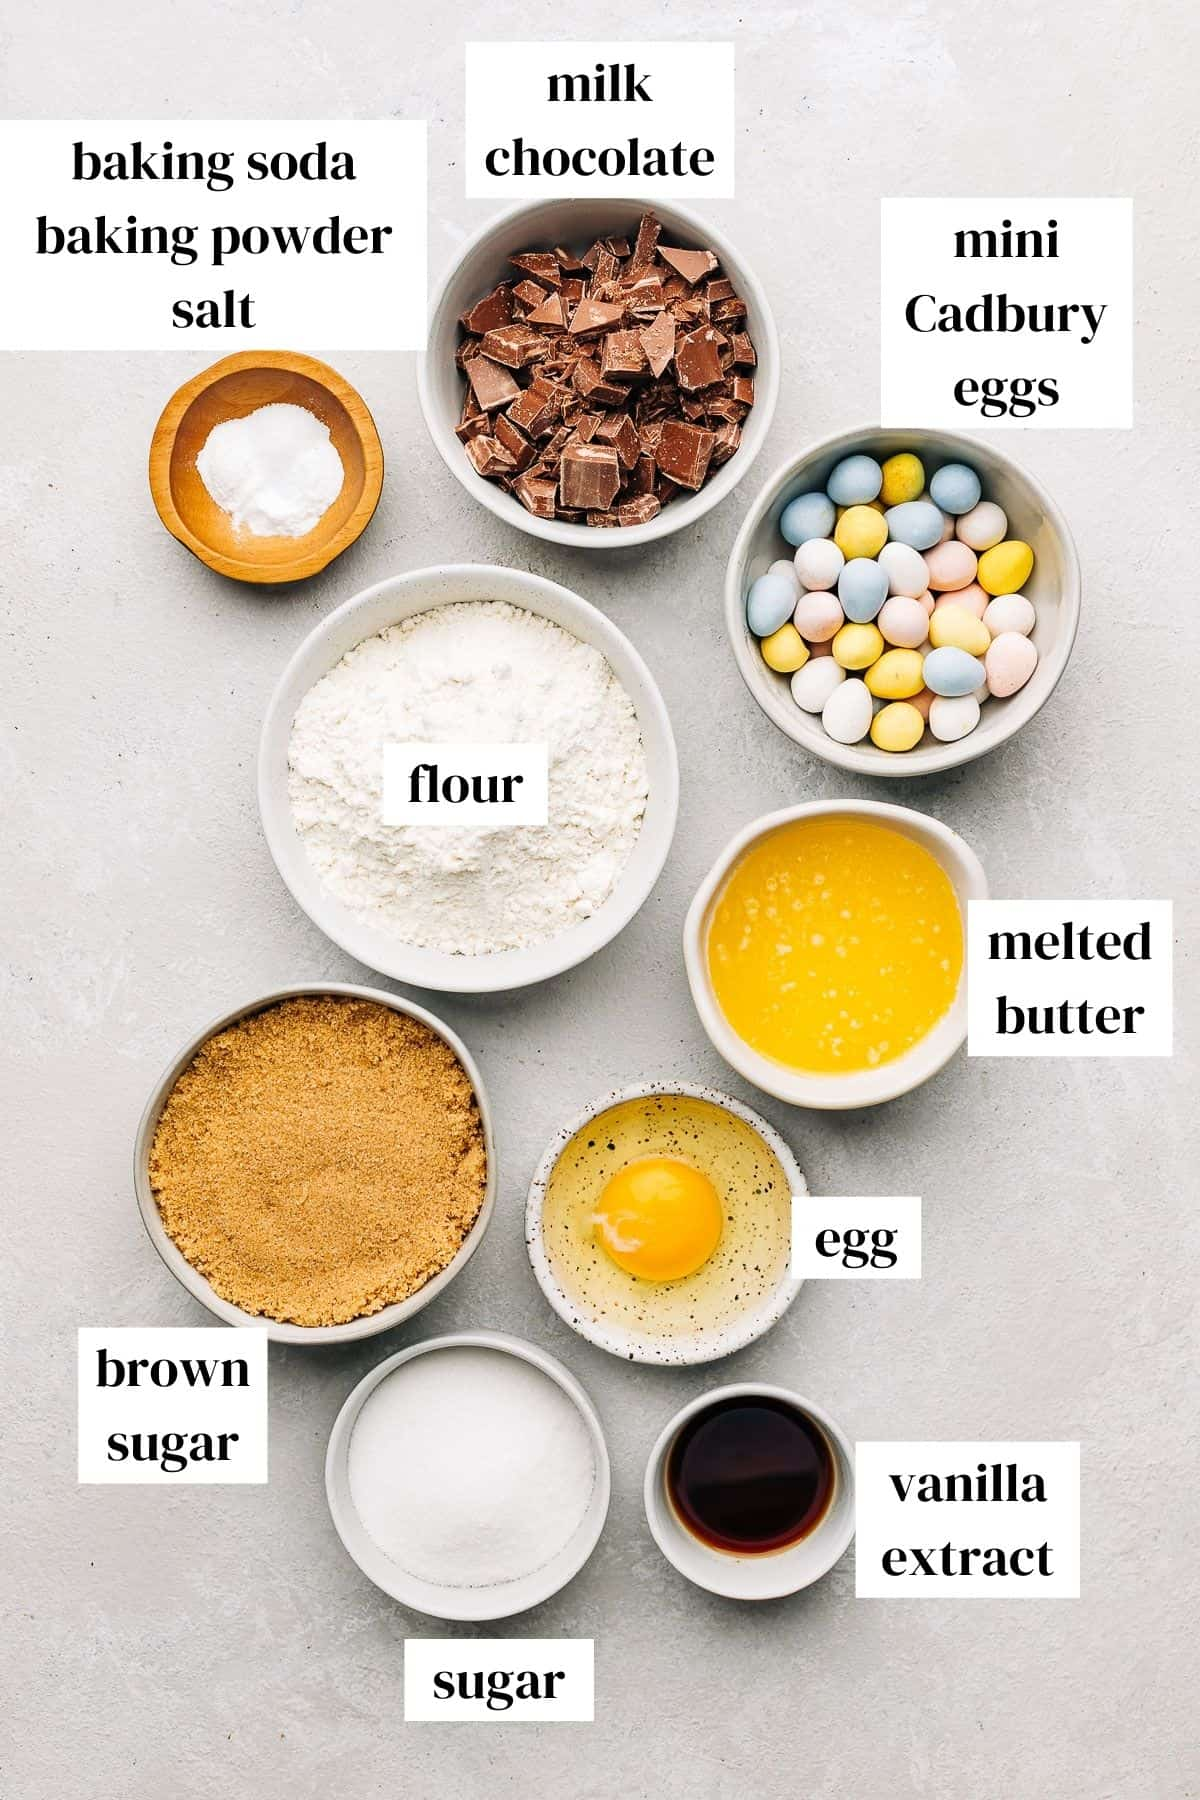 milk chocolate, cadbury mini eggs, melted butter, egg, vanilla extract, sugar, brown sugar, flour, baking powder, baking soda, salt on a gray surface.